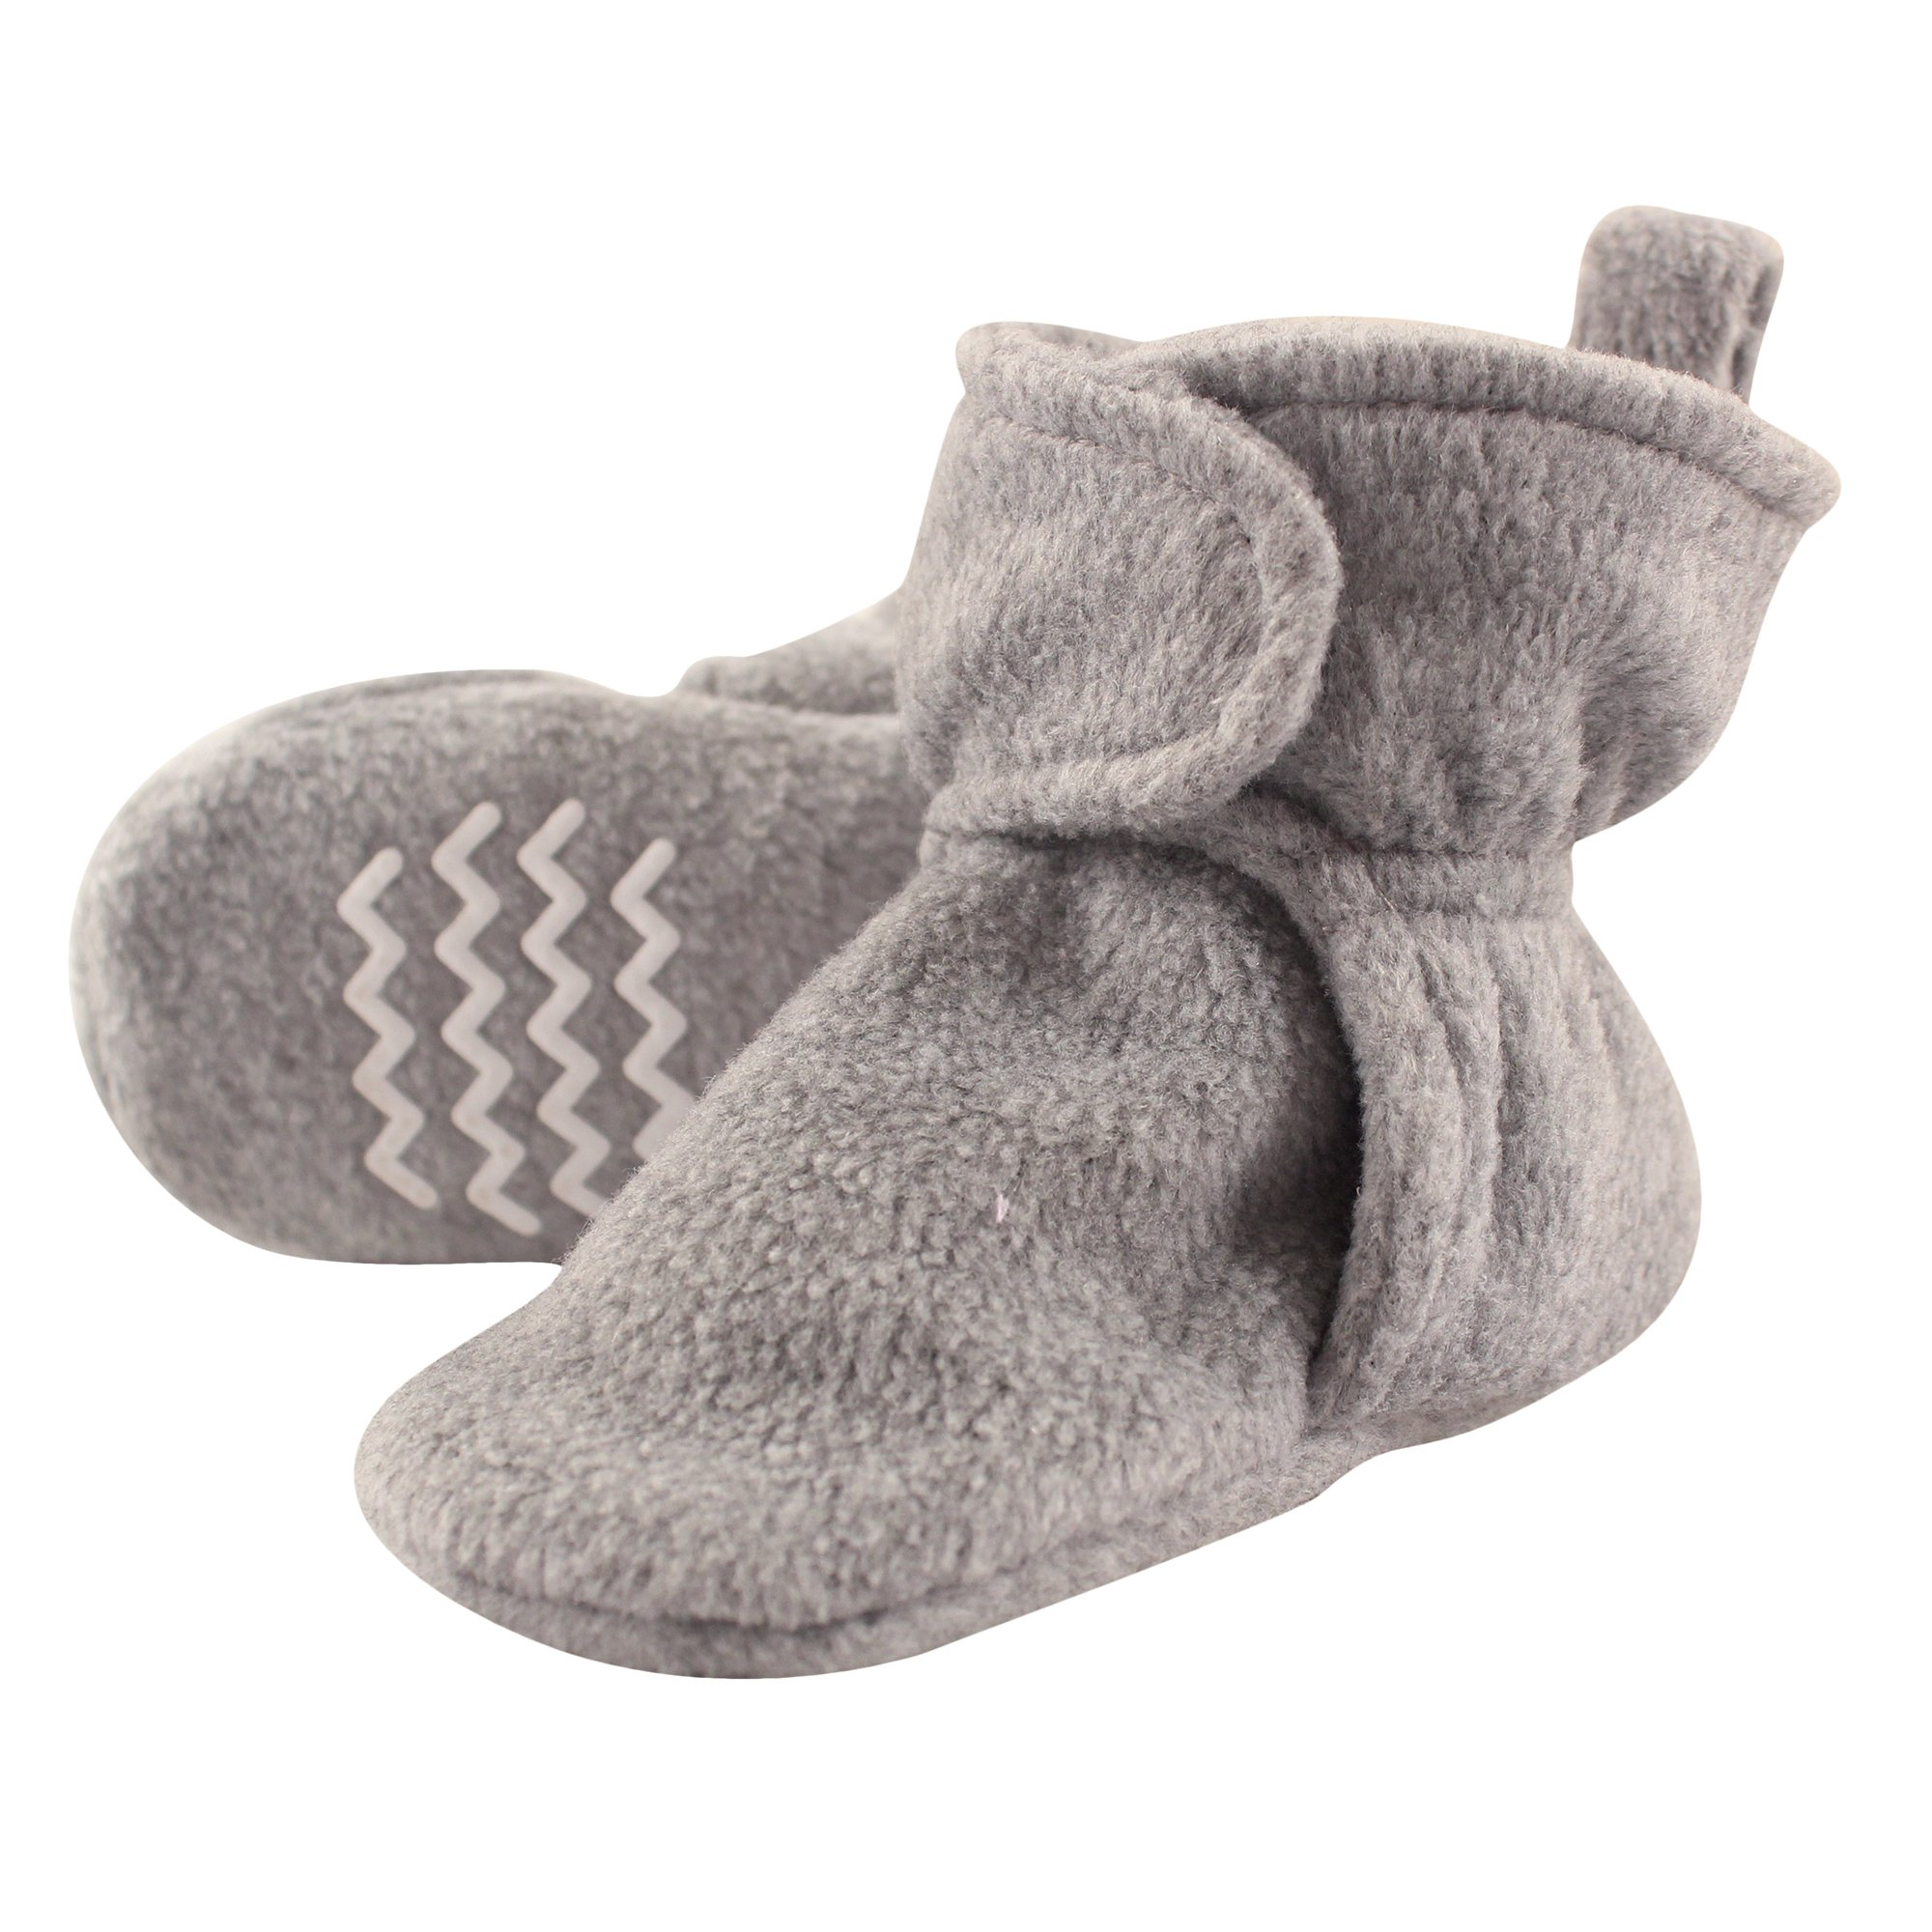 Hudson Baby Unisex Cozy Fleece Booties